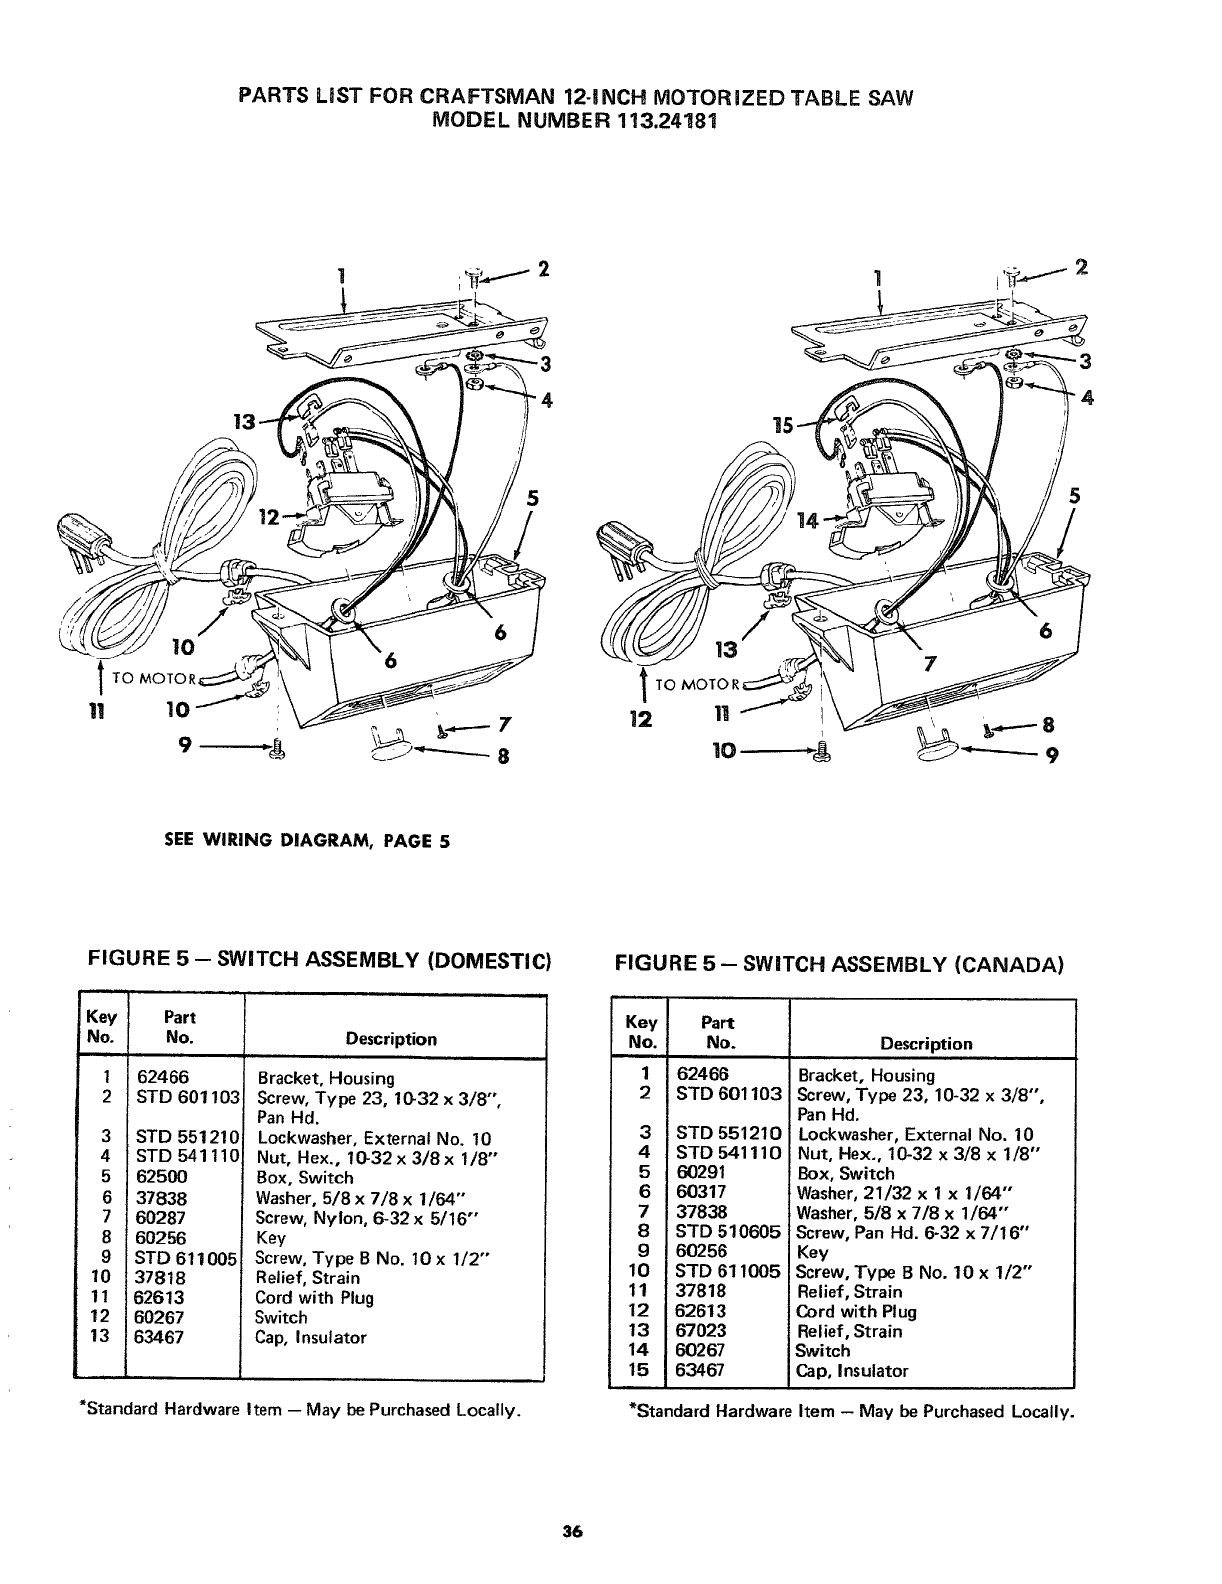 cffdc2e2 ba6b 43b2 a168 a3d4ed03dc5a bg24 page 36 of craftsman saw 113 24181 user guide manualsonline com craftsman table saw wiring diagram at soozxer.org